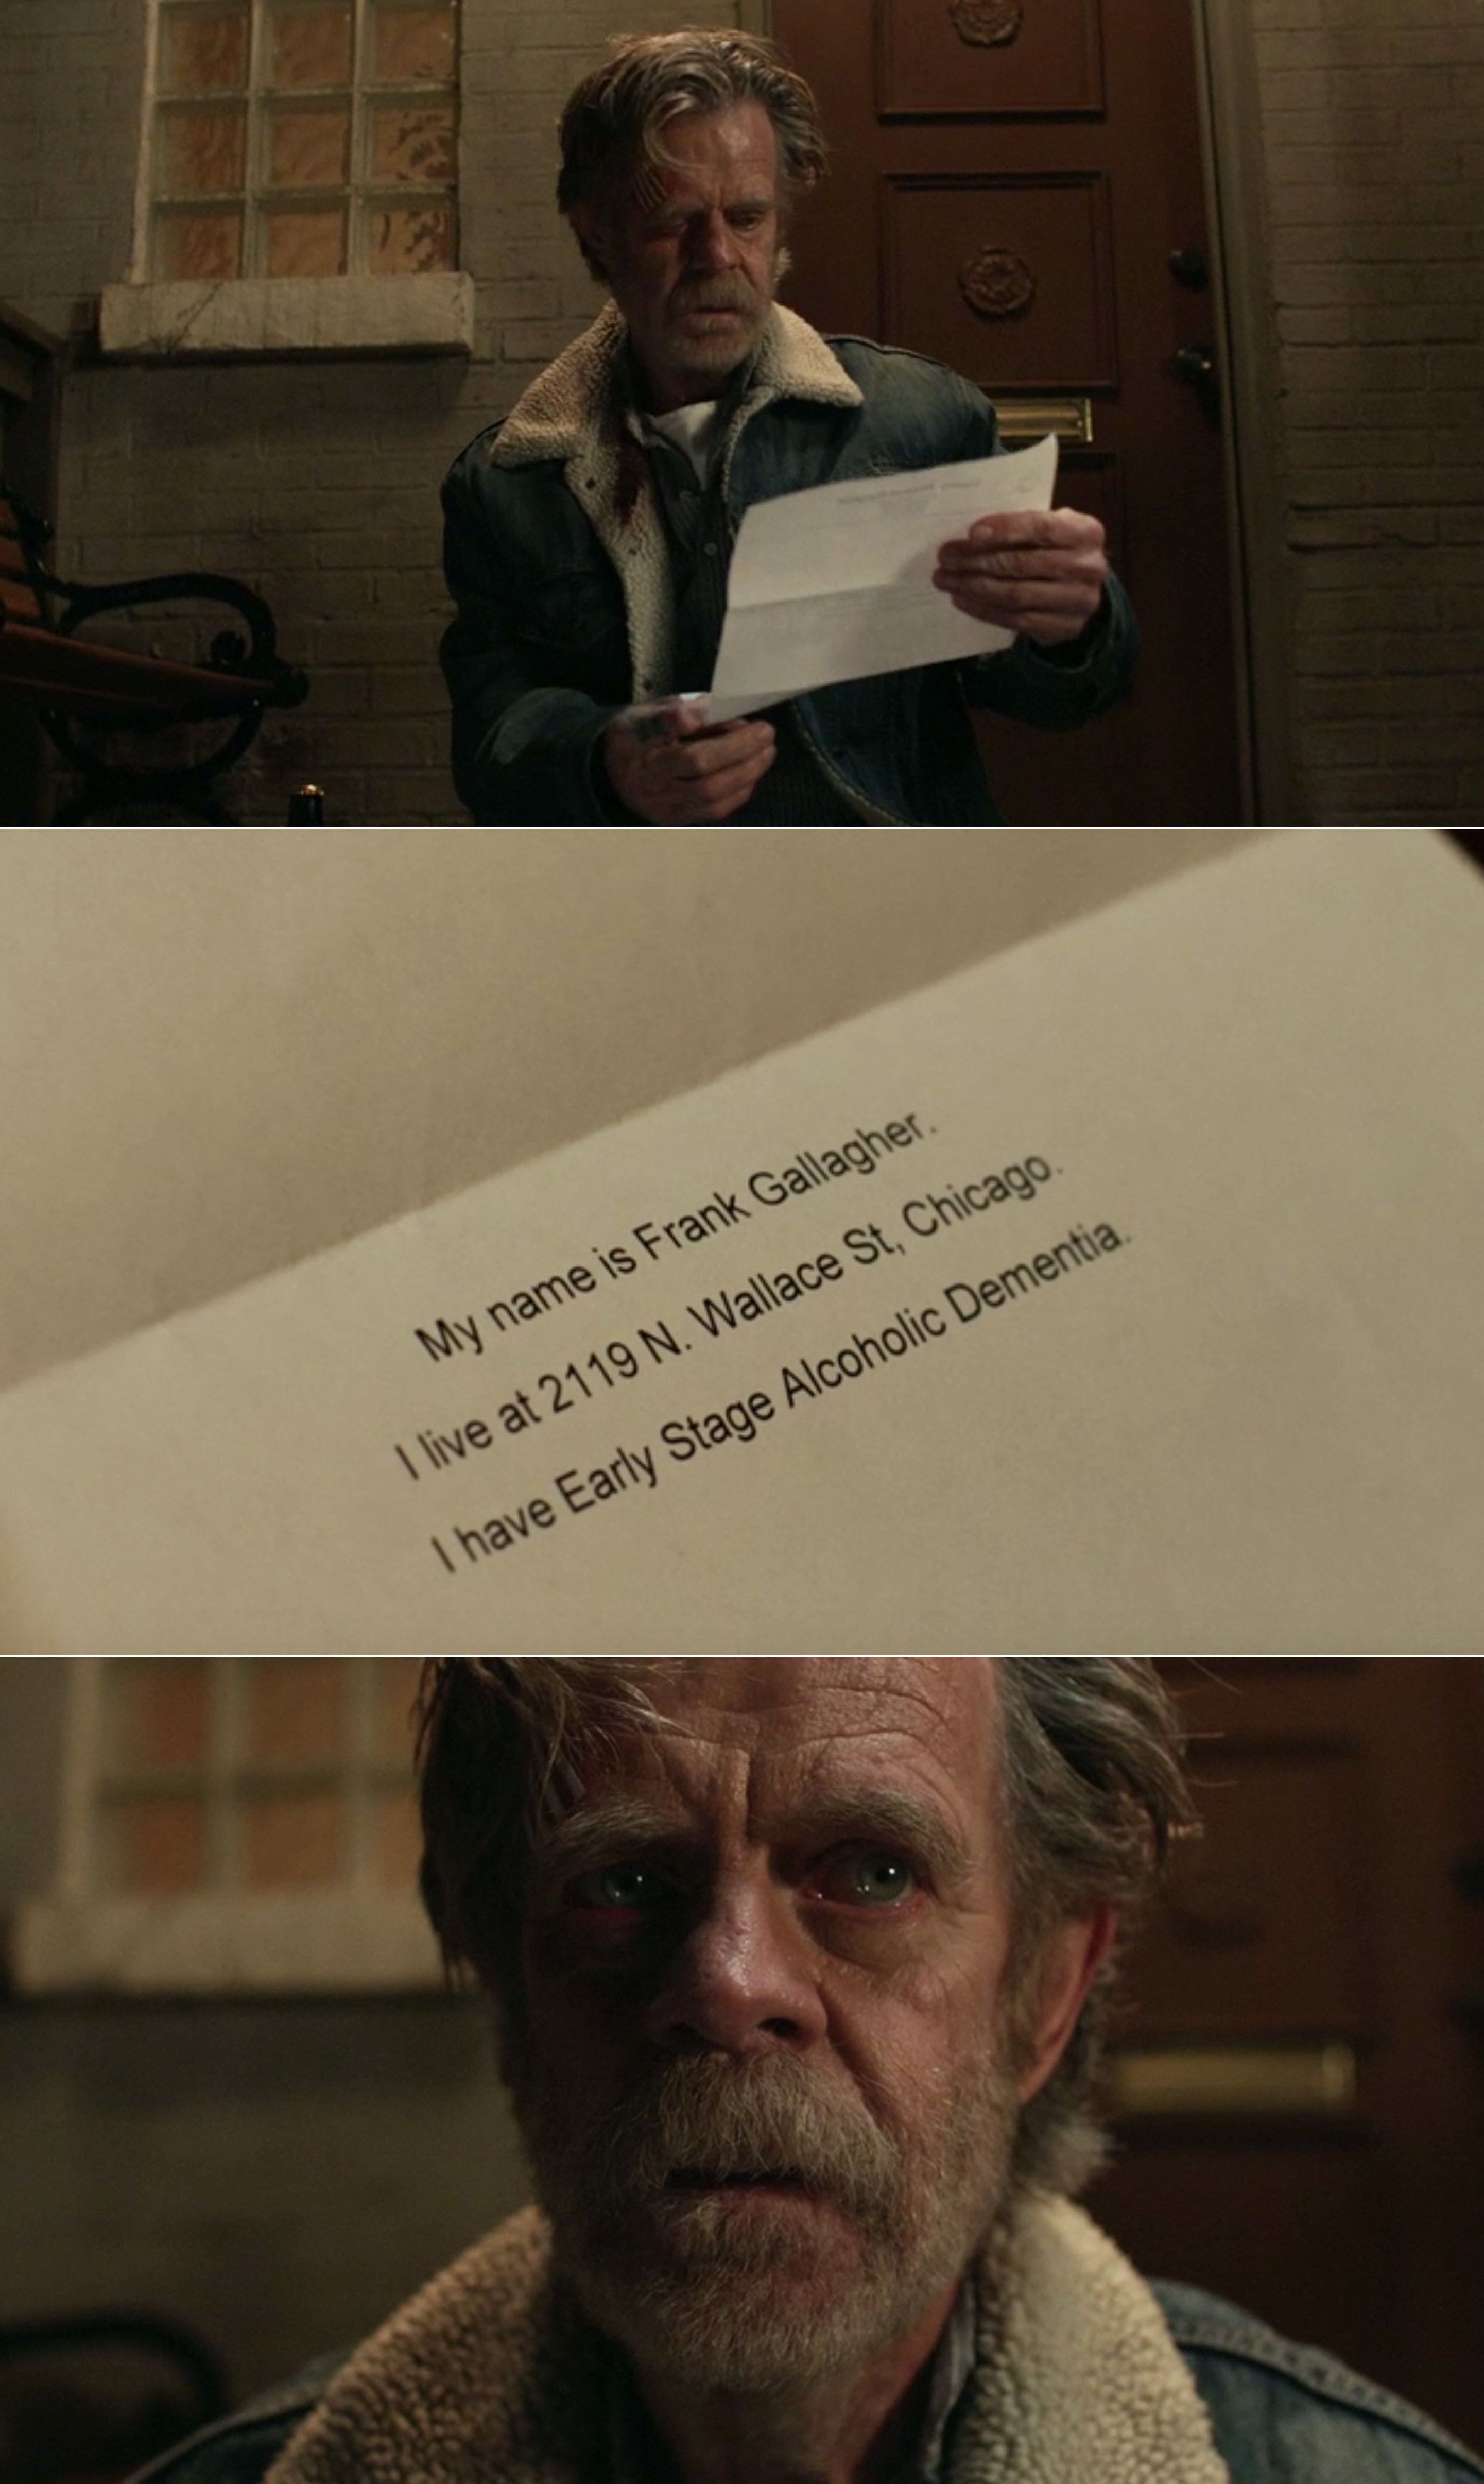 """Frank reading a note that says, """"My name is Frank Gallagher. I live at 2119 N. Wallace St, Chicago. I have Early Stage Alcoholic Dementia"""""""